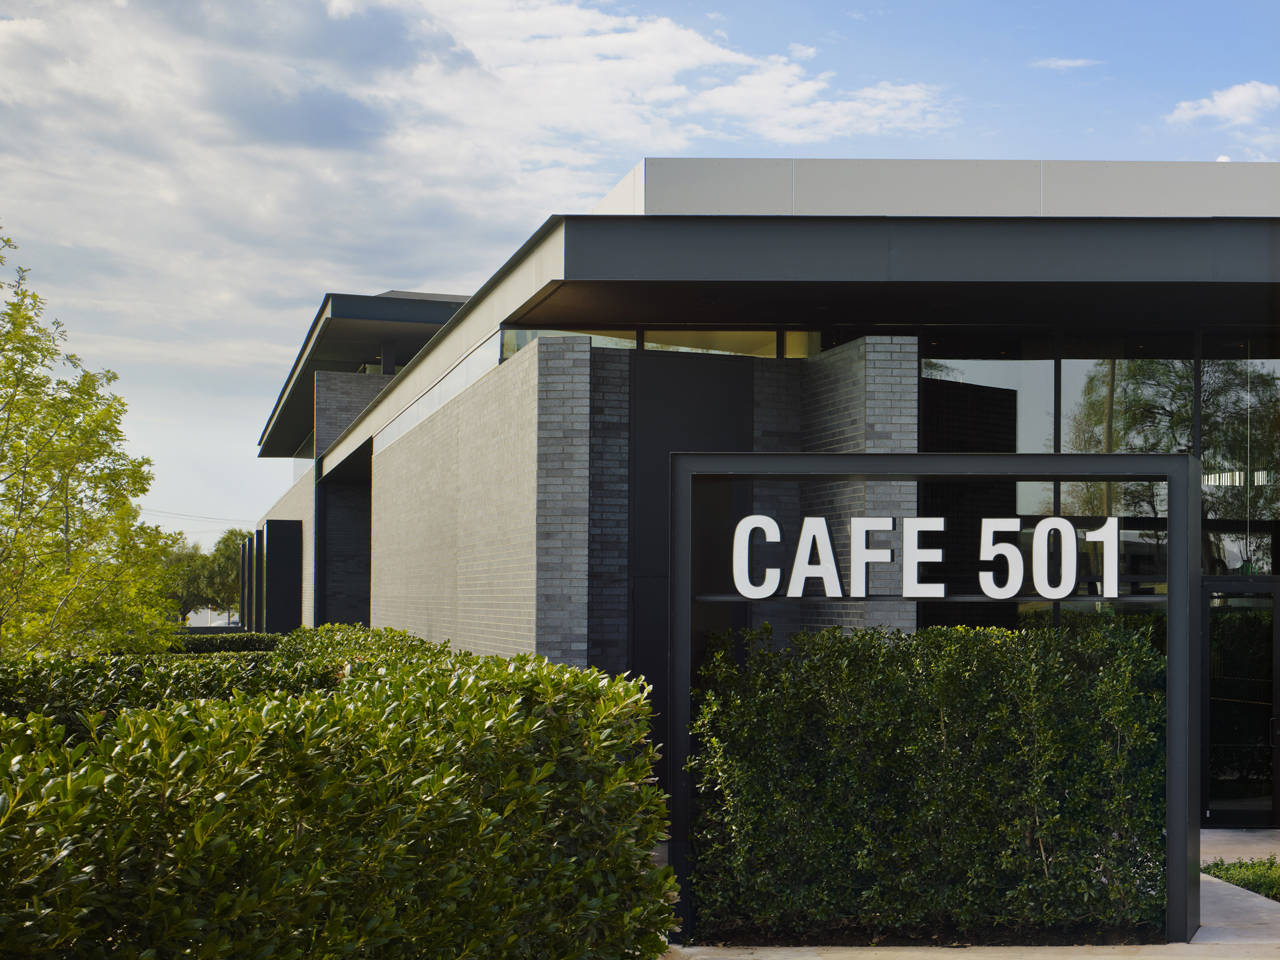 Cafe 501 by elliott associates architects karmatrendz for Cafe design exterior